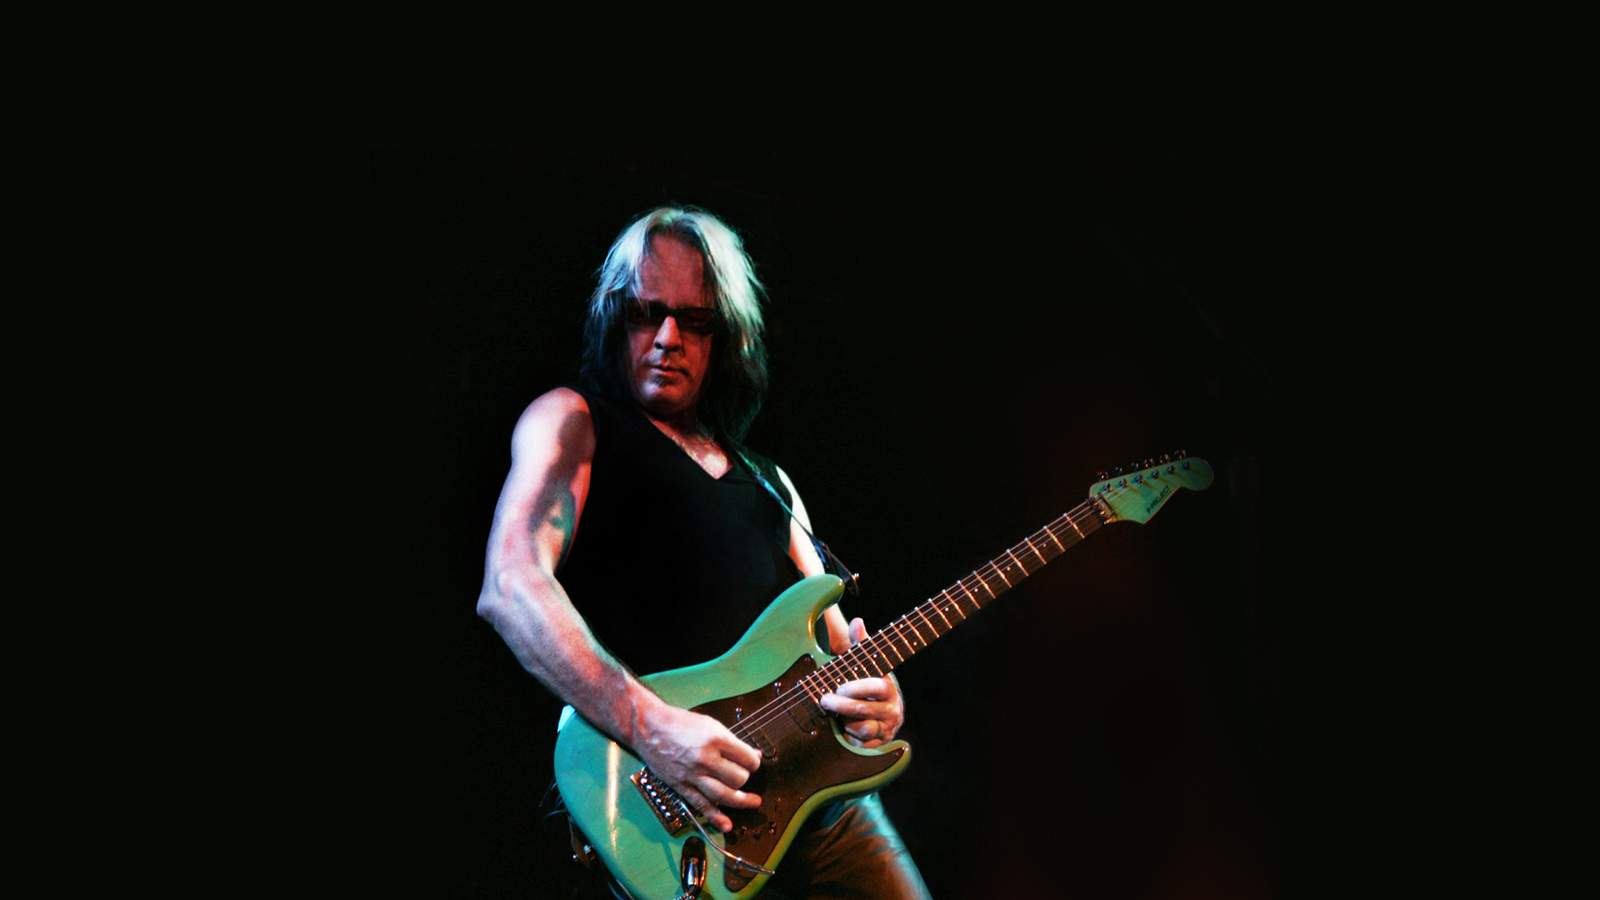 Todd Rundgren (Rescheduled from 6/11/2020, 8/5/2020)